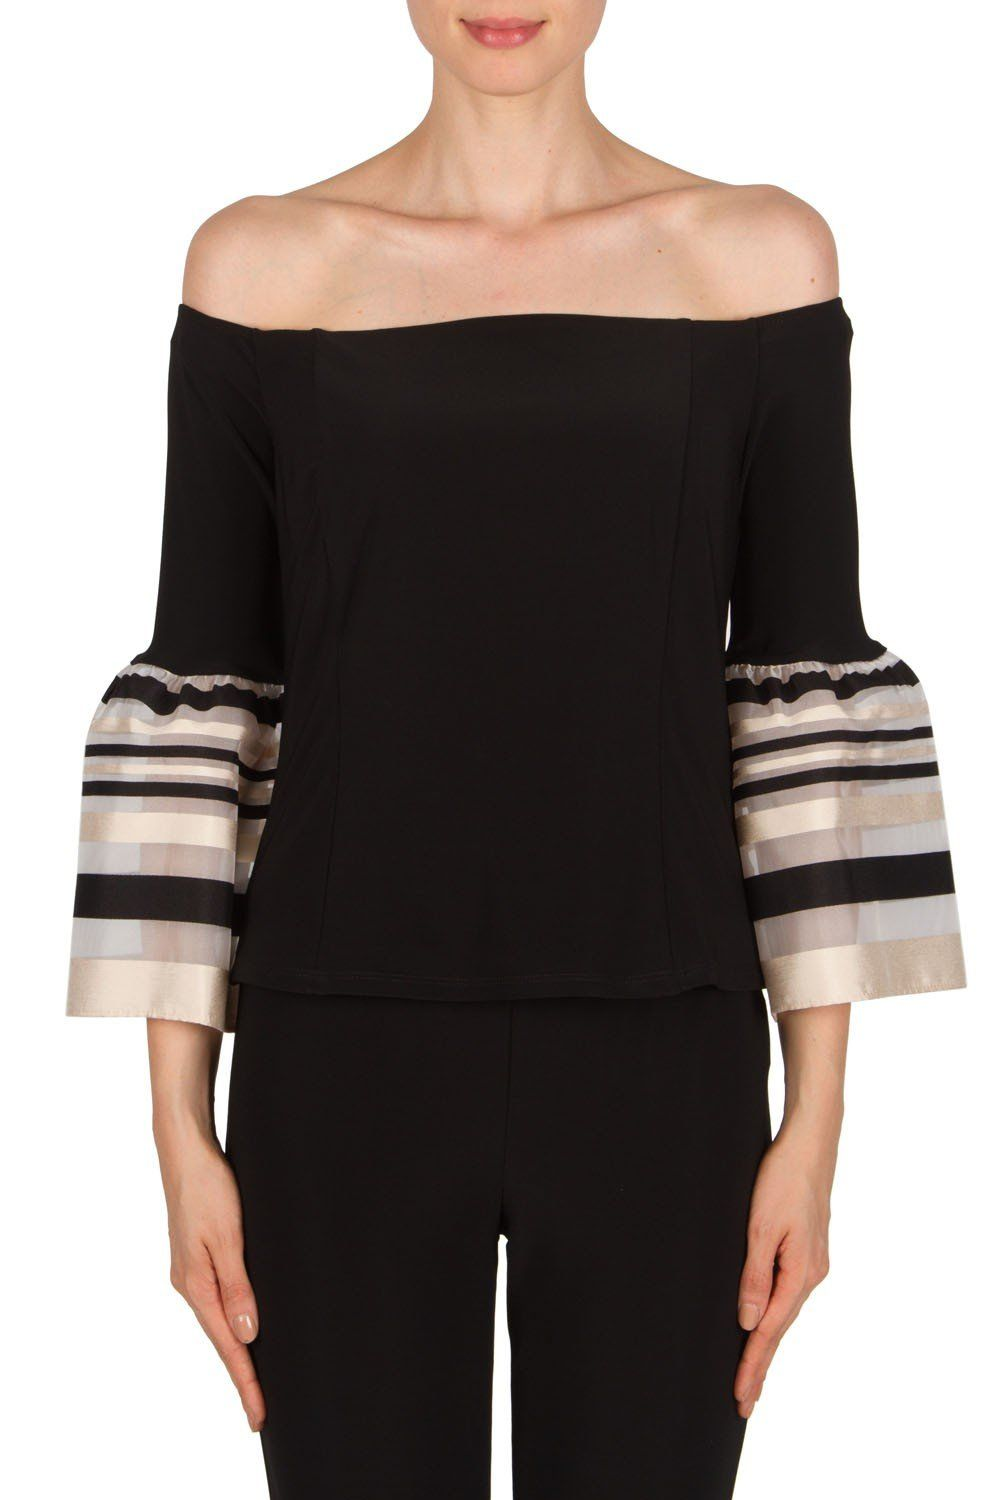 f30721884b53 Joseph Ribkoff Off Shoulder Top in Black Taupe (Style 181912 ...